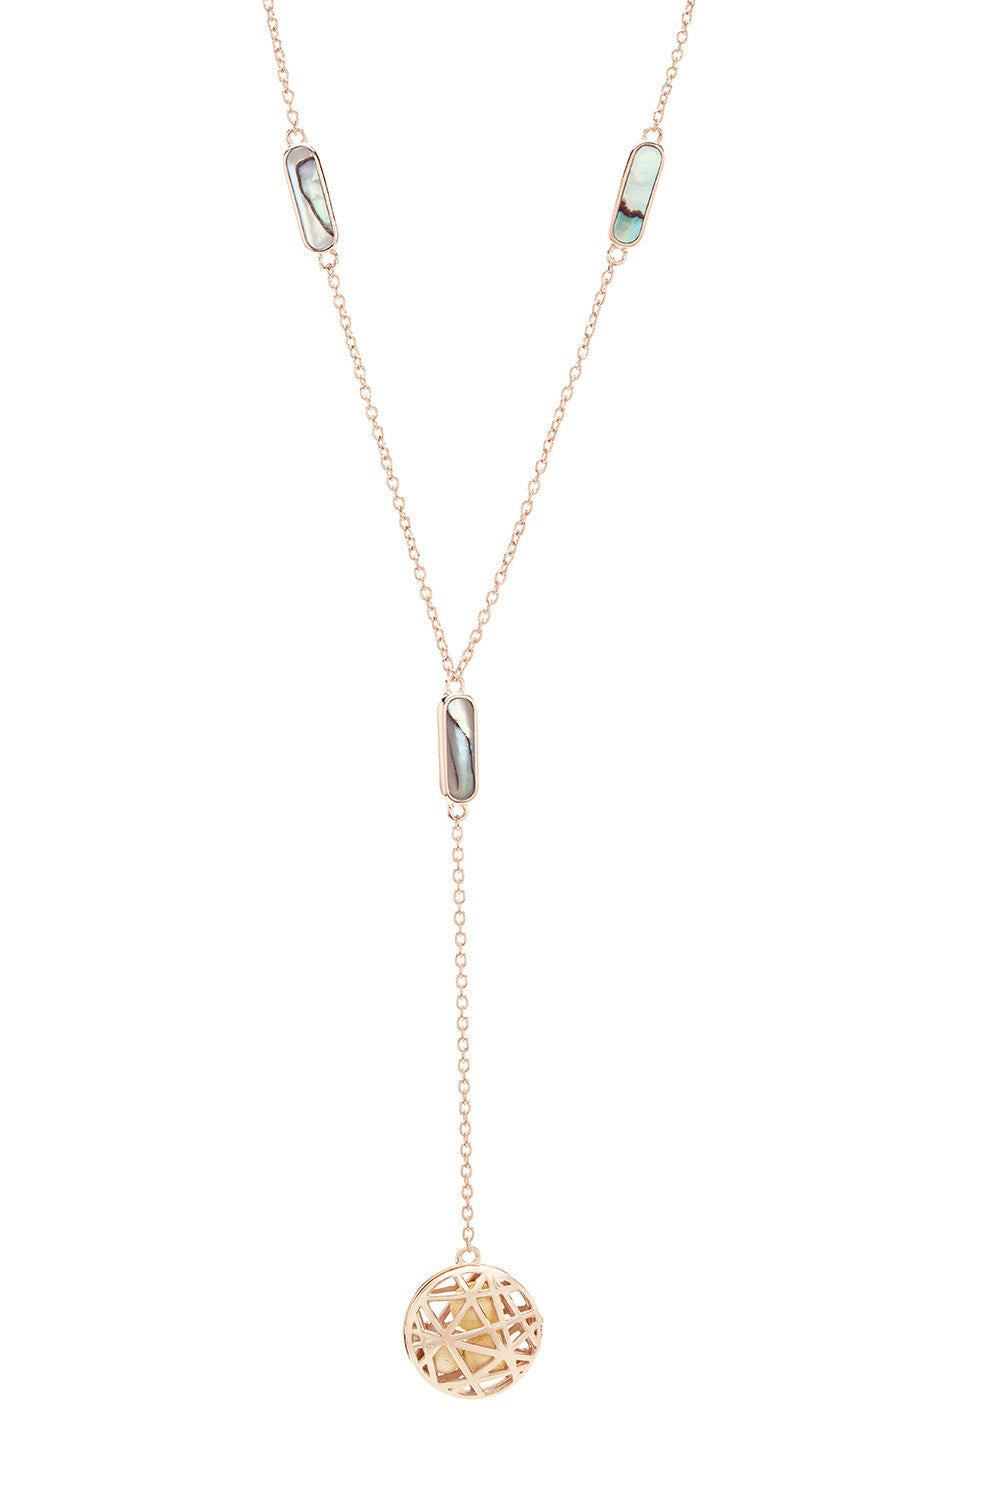 Nest Disc Y-Necklace - Abalone & Rose Gold